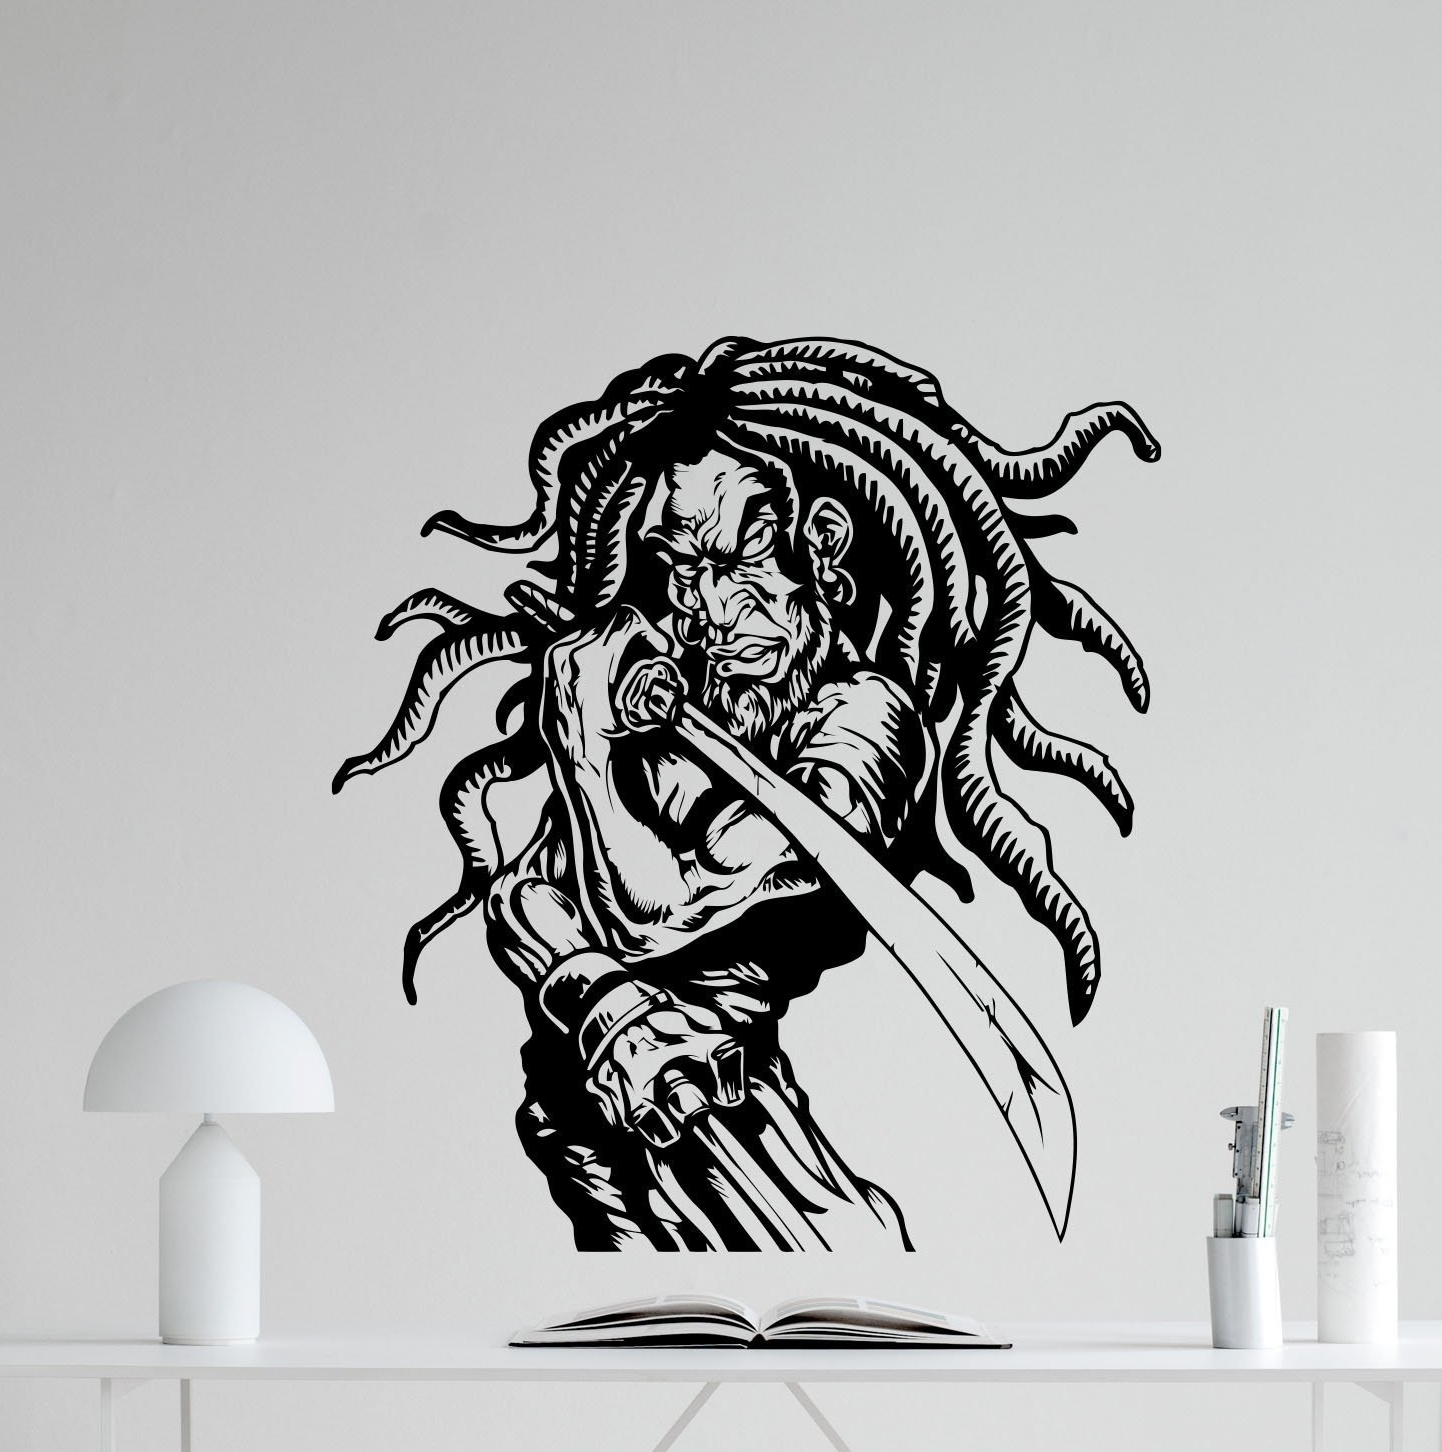 Recent Amazon: Rasta Samurai Wall Decal Rastaman Sword Ninja Warrior Intended For Samurai Wall Art (View 8 of 15)